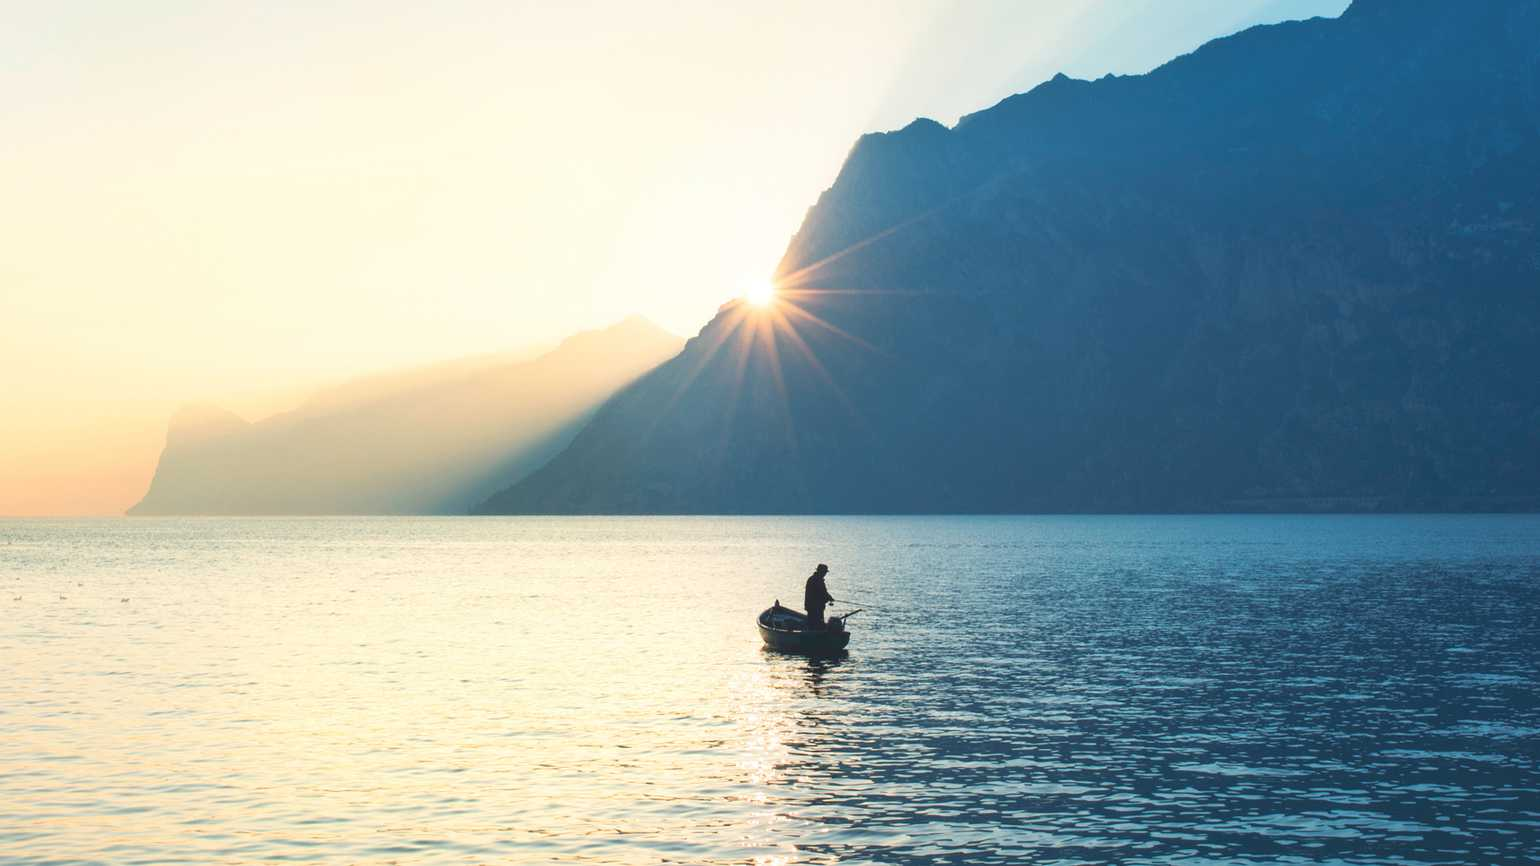 A fisherman in his boat on a lake; Getty Images